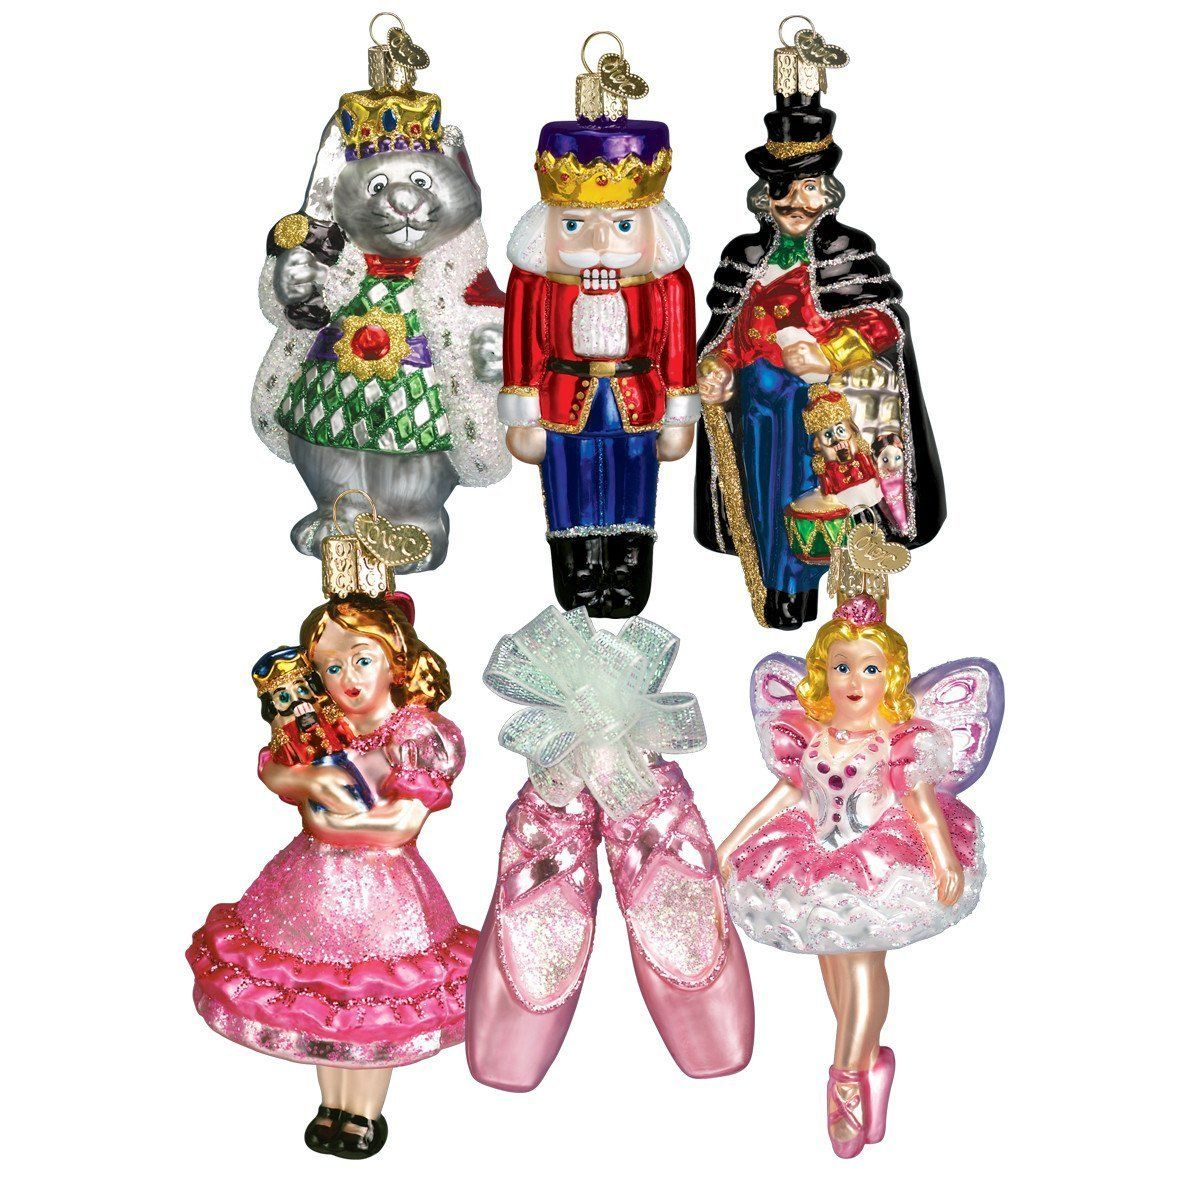 Old World Christmas Nutcracker Suite Collection Ornament Box Set celebrates an iconic Christmas Tradition. Each Ornament measures 4 to 5 inches tall. Give the gifts of tradition! This perfect gift includes a certificate for giving. The Ornament collections are cherished and handed down from one generation to the next, each ornament is carefully selected to showcase Christmas traditions. Makes a Great Gift. The ornament set comes in a Premium Satin Lines Gift Box The set includes: Clara (4 inches